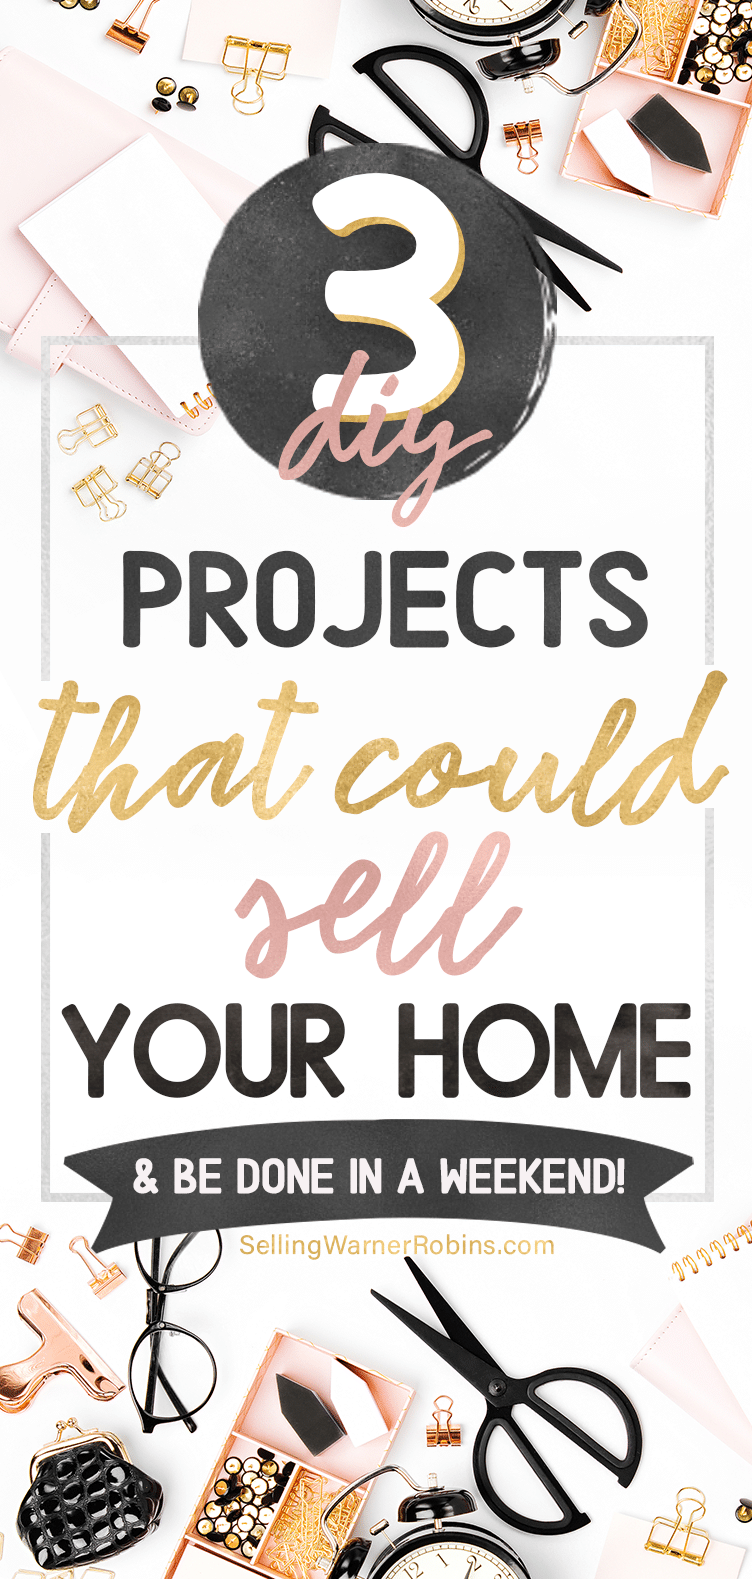 Are you wanting to improve the value of your home? I'm sure you do! These three easy DIY projects are appealing to most home buyers and each can be done in just a weekend. #diyprojects #diyhomeremodeling #homeprojects #realestate #sellmyhome #homeimprovement